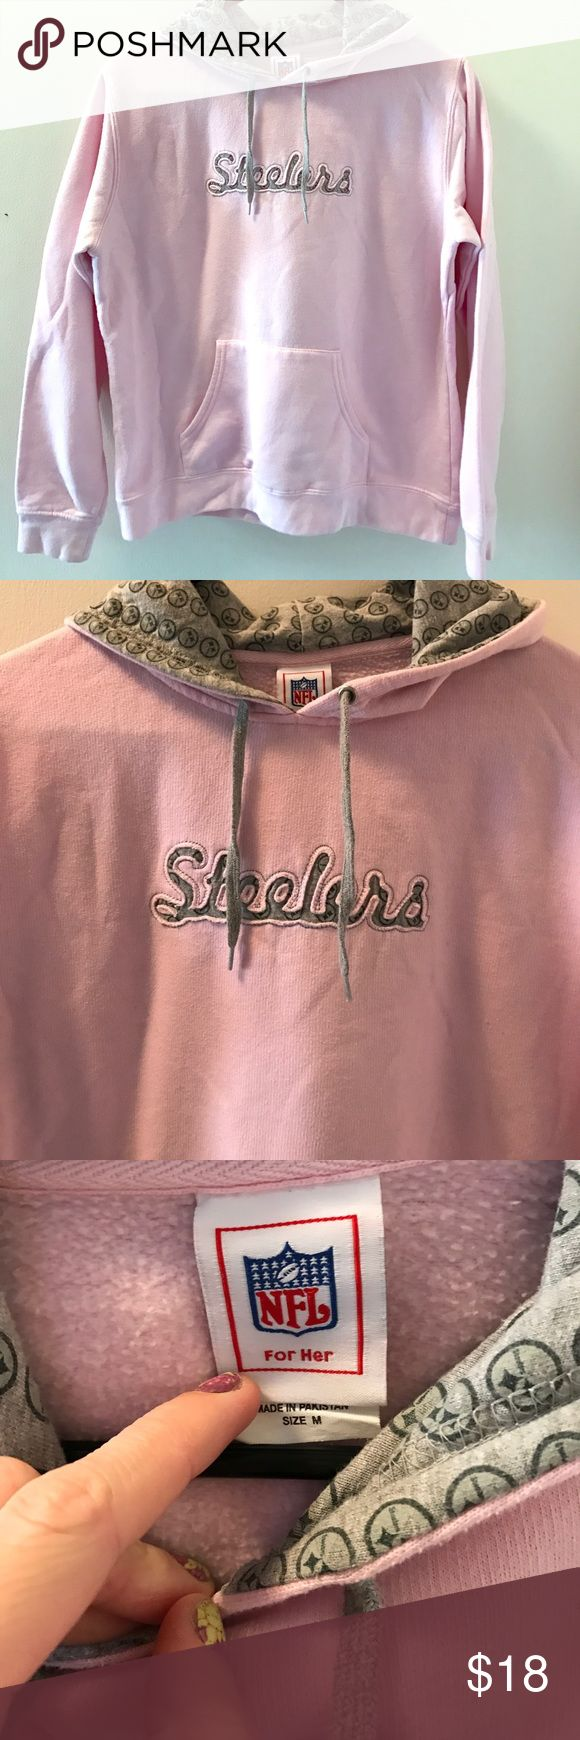 Pink Female Steelers Hoodie Pink Steelers Hoodie! Steeler emblem detail in the letters on the front and in the hood. Size M. Worn very few times. Slight darkened area on the back (as pictured) but no damages. NFL Tops Sweatshirts & Hoodies